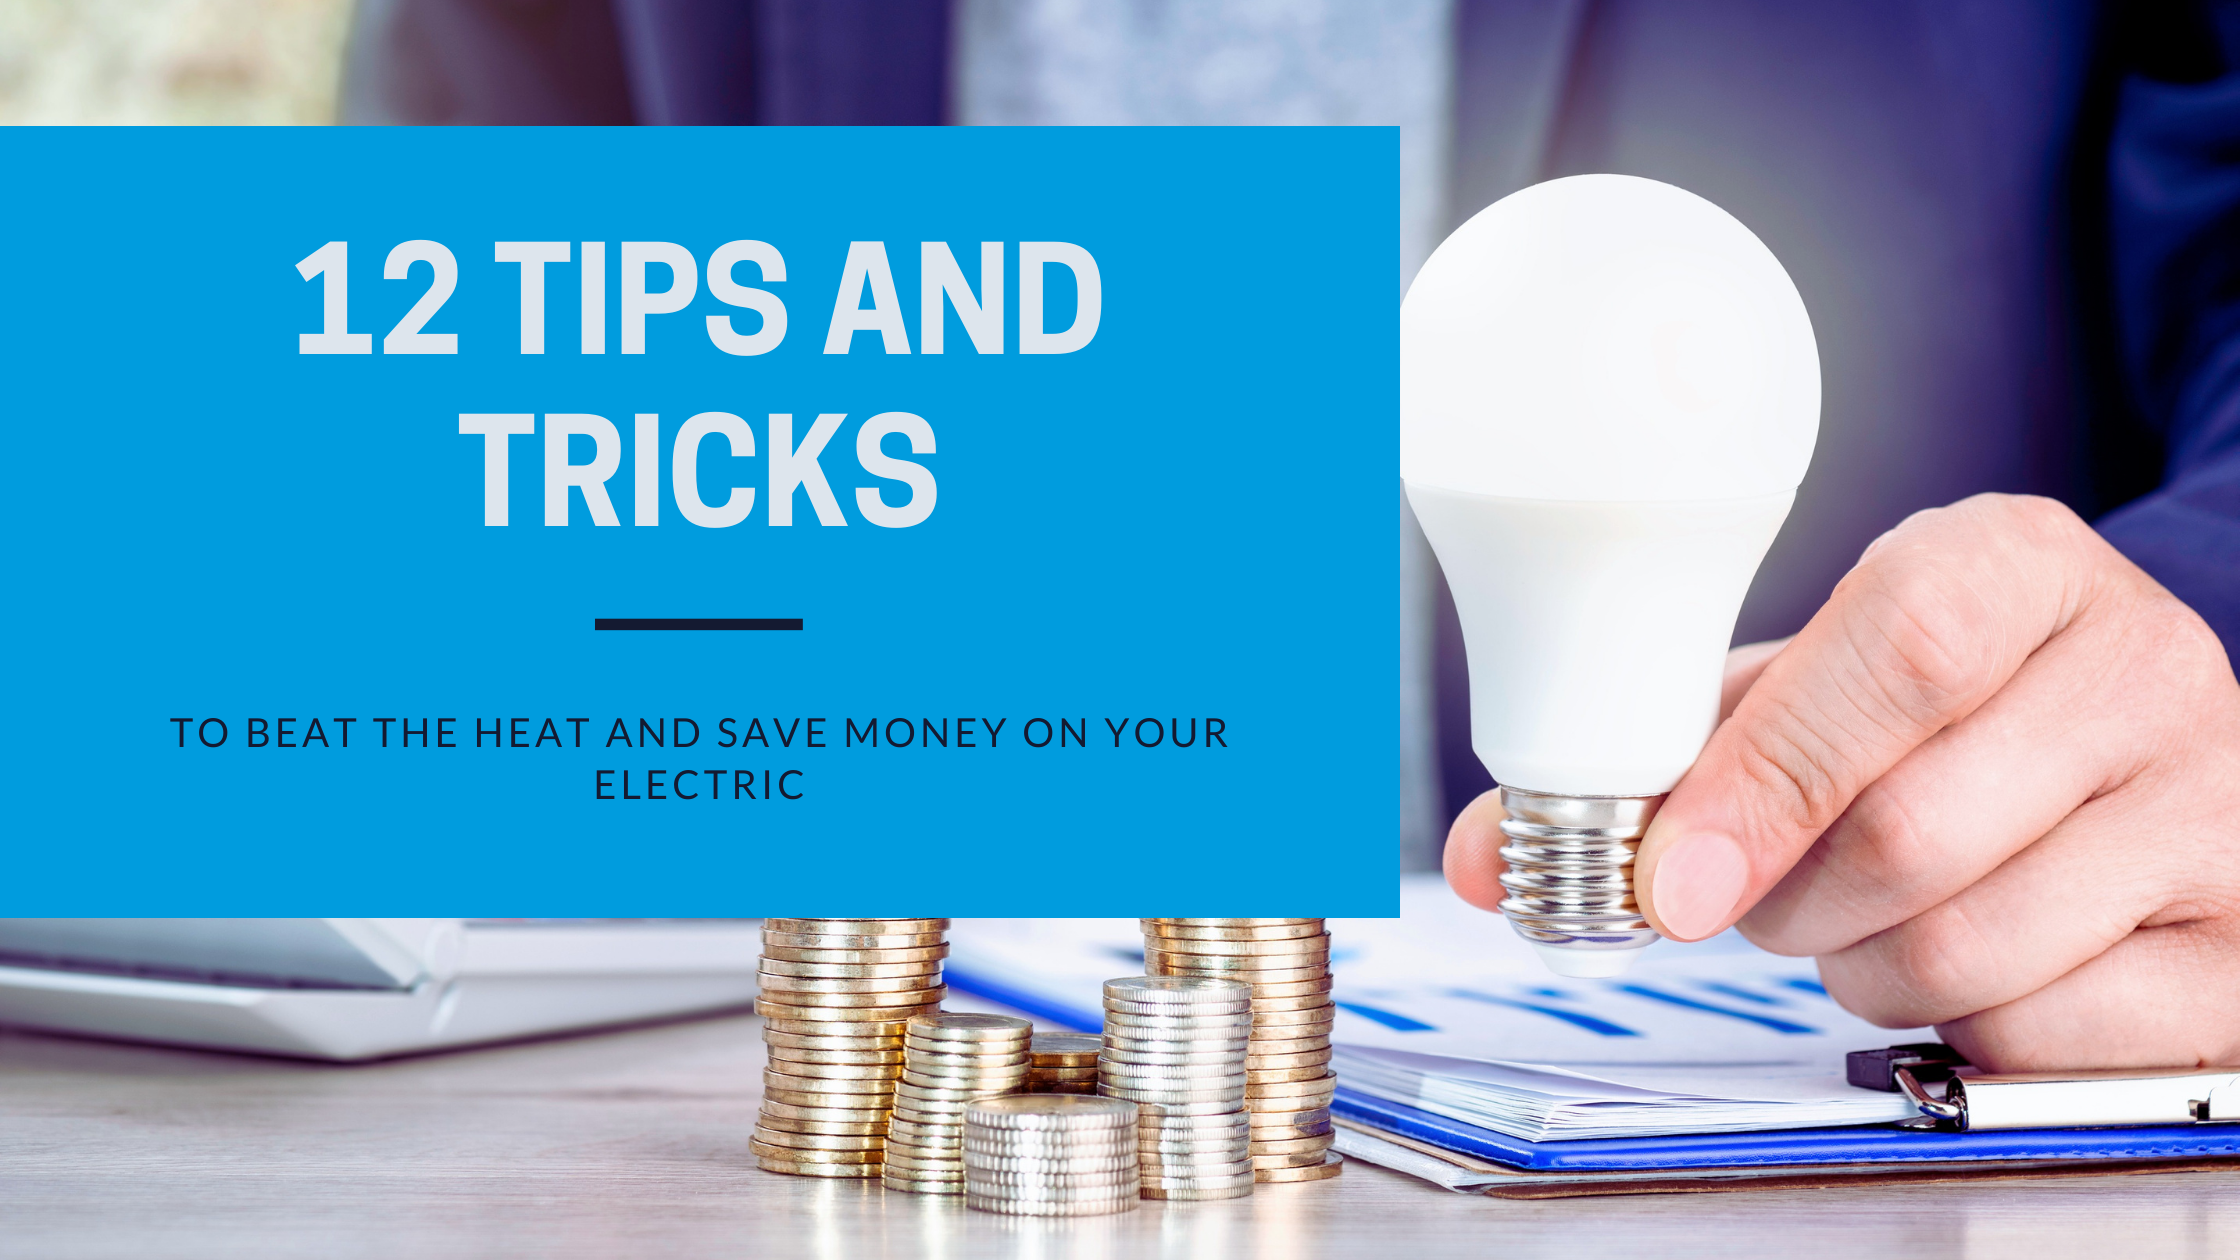 12 tips and tricks to save money on your electric this summer